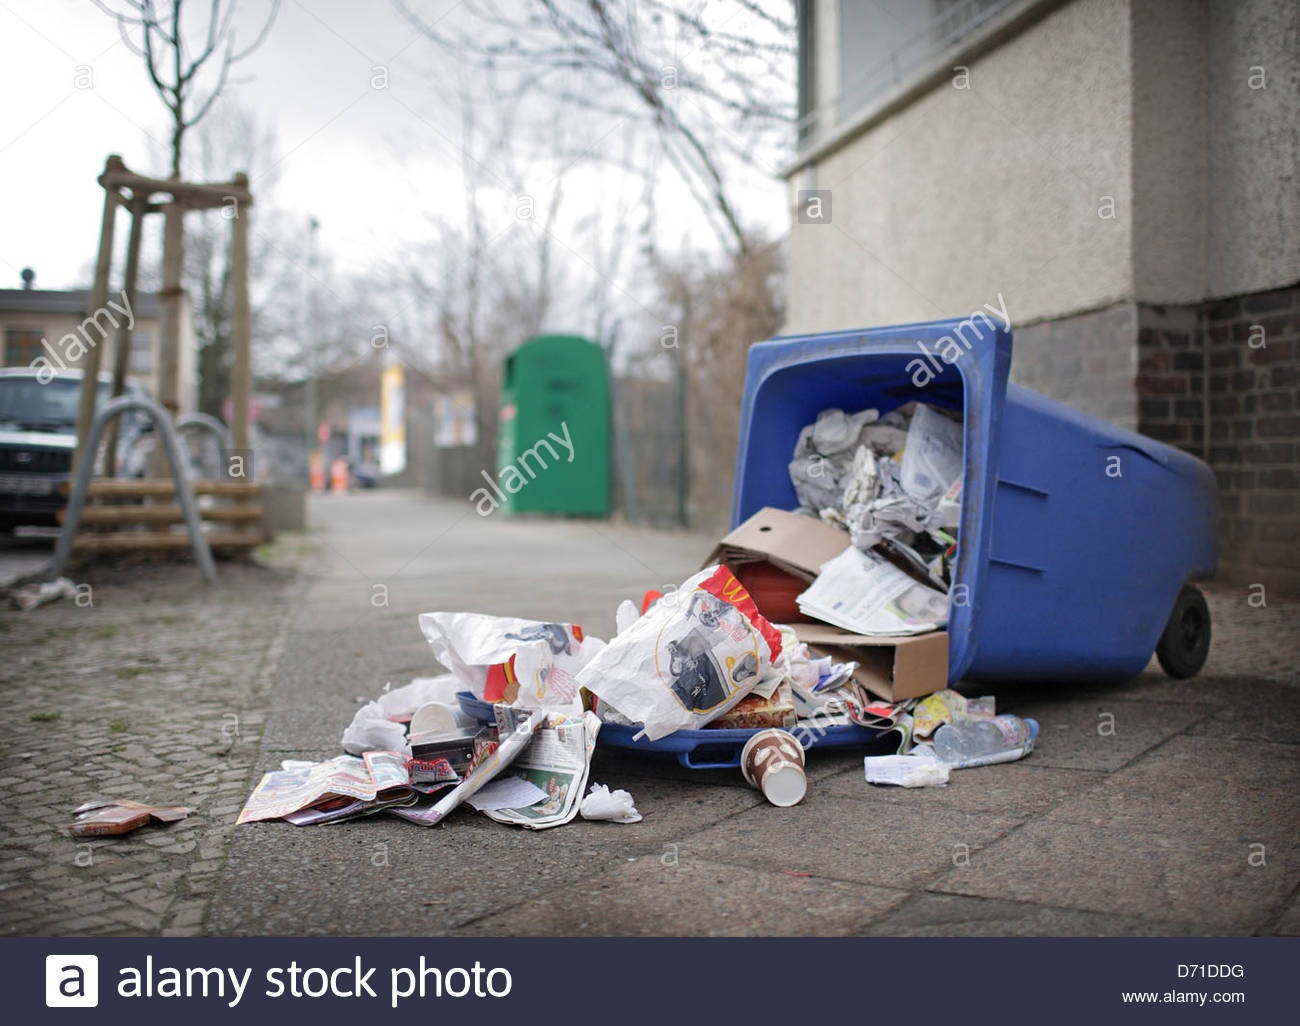 Fallen garbage bin in the street - Stock Image